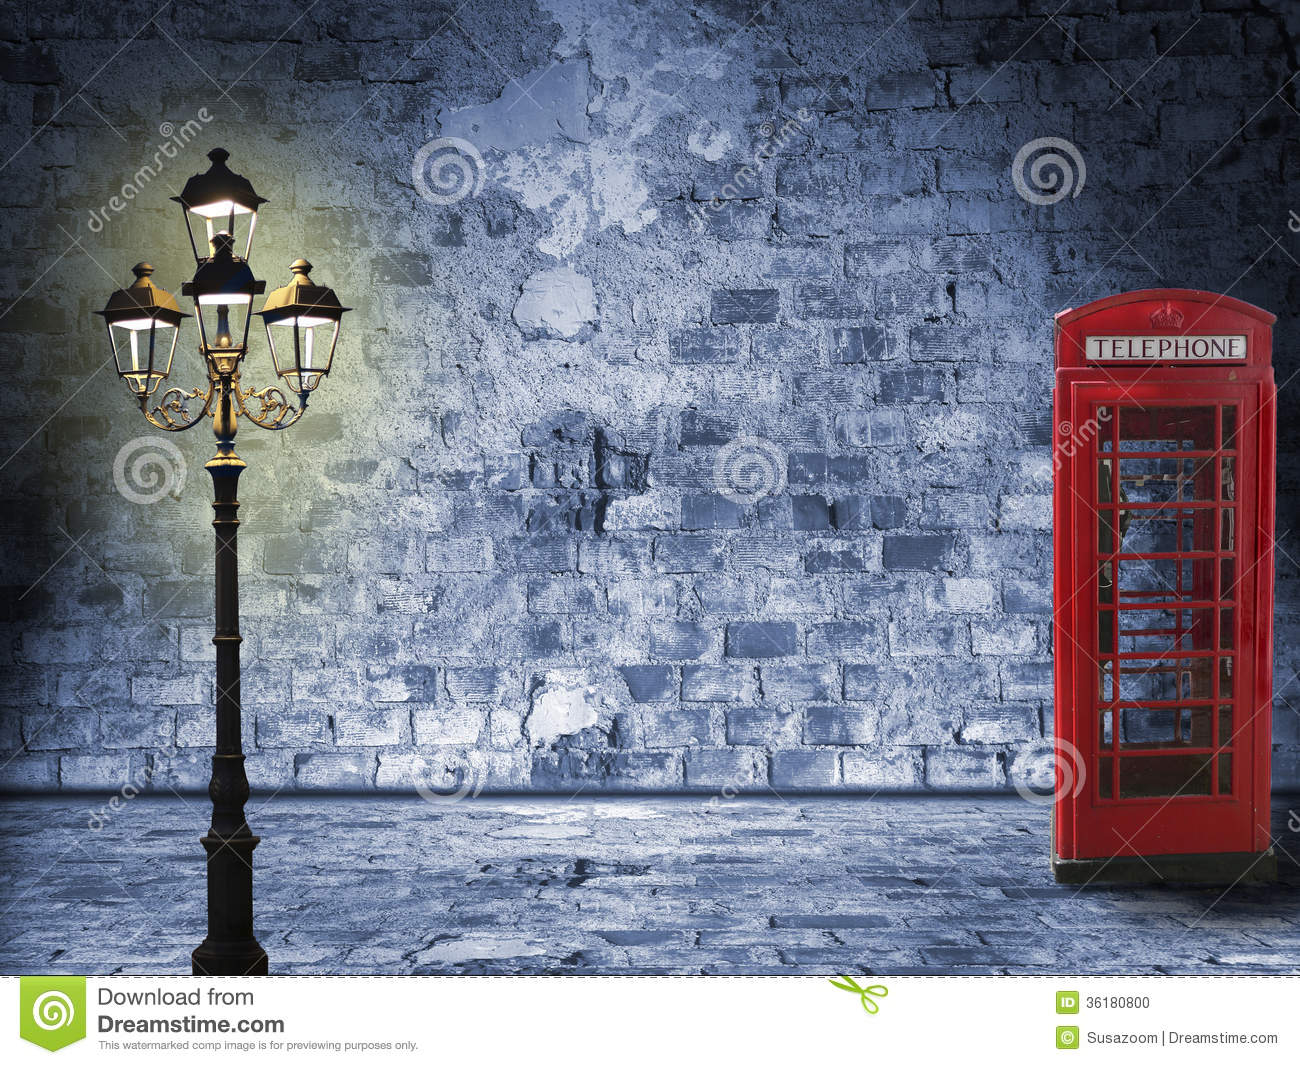 Vintage scenery brick wall lantern and phone box night scenery in